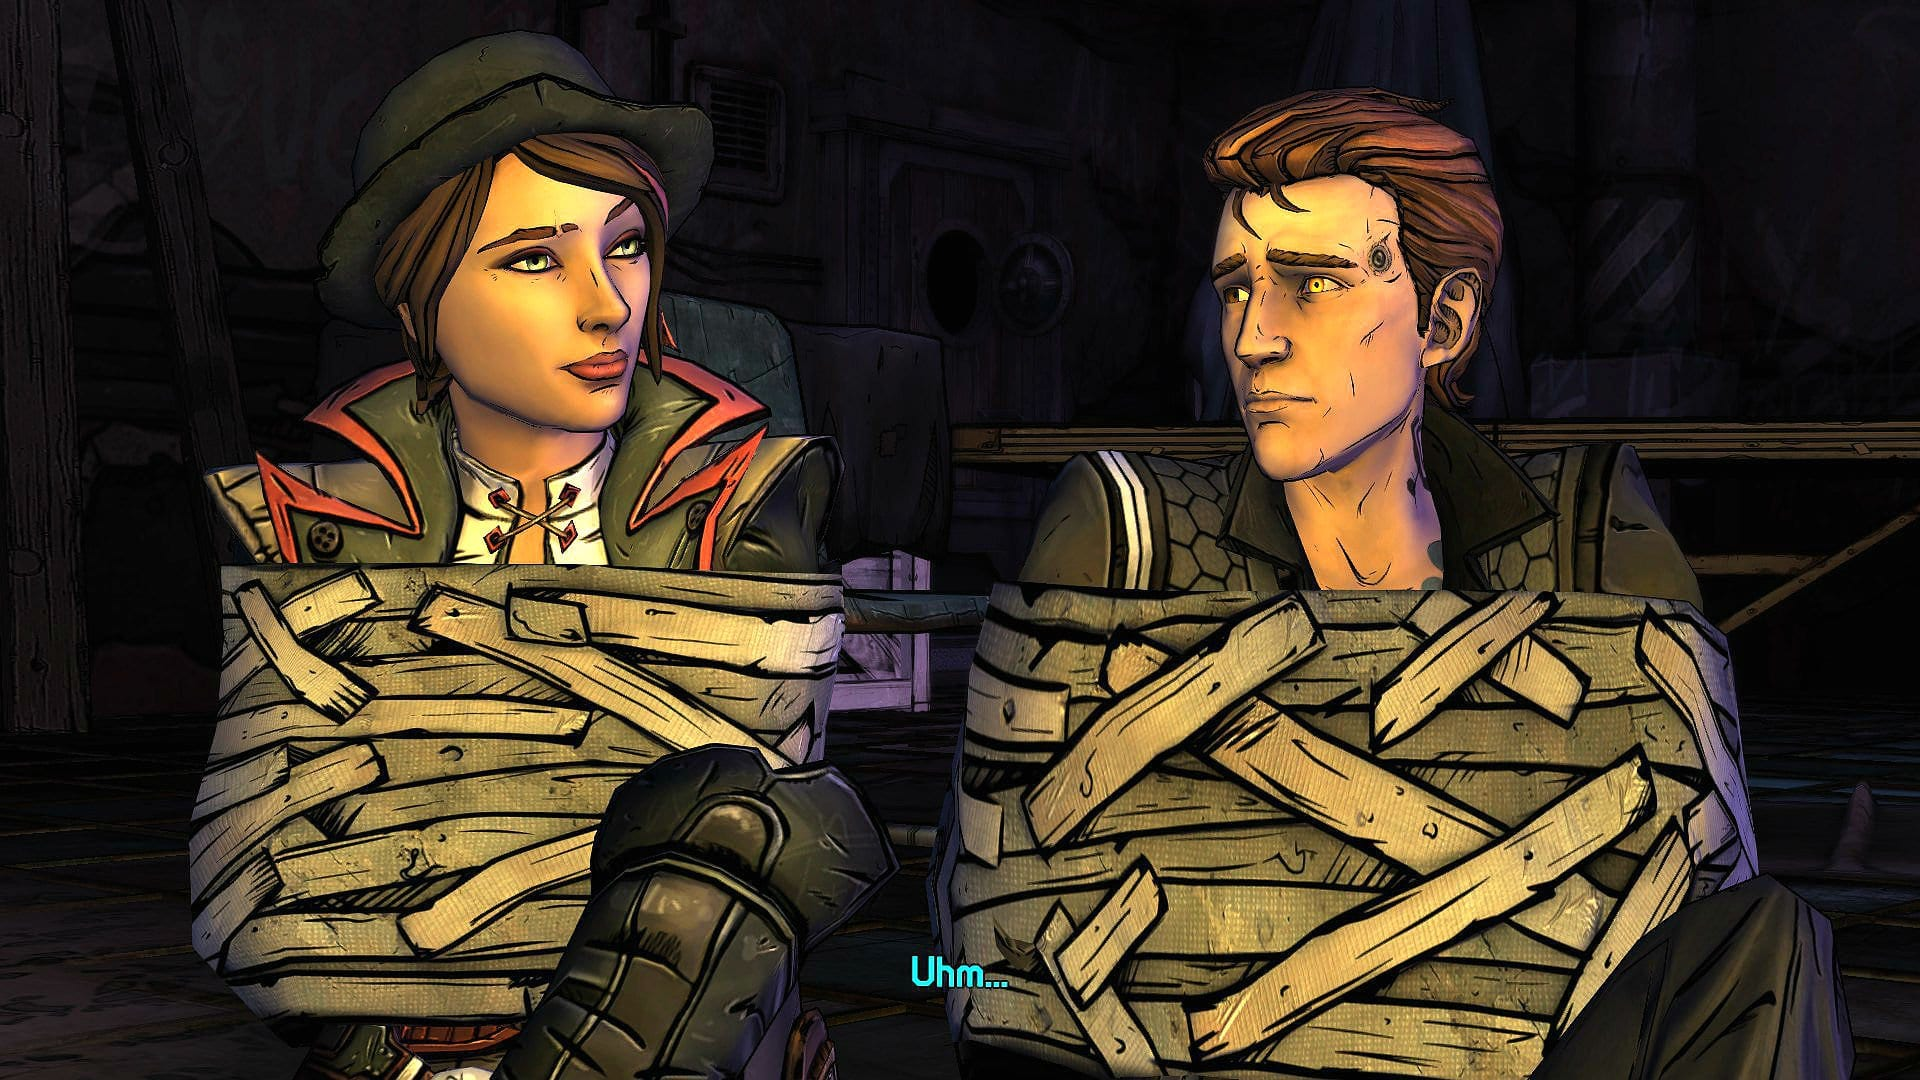 TALES_FROM_THE_BORDERLANDS_adventure_action_fighting_shooter_tales_borderlands_poster_1920x1080